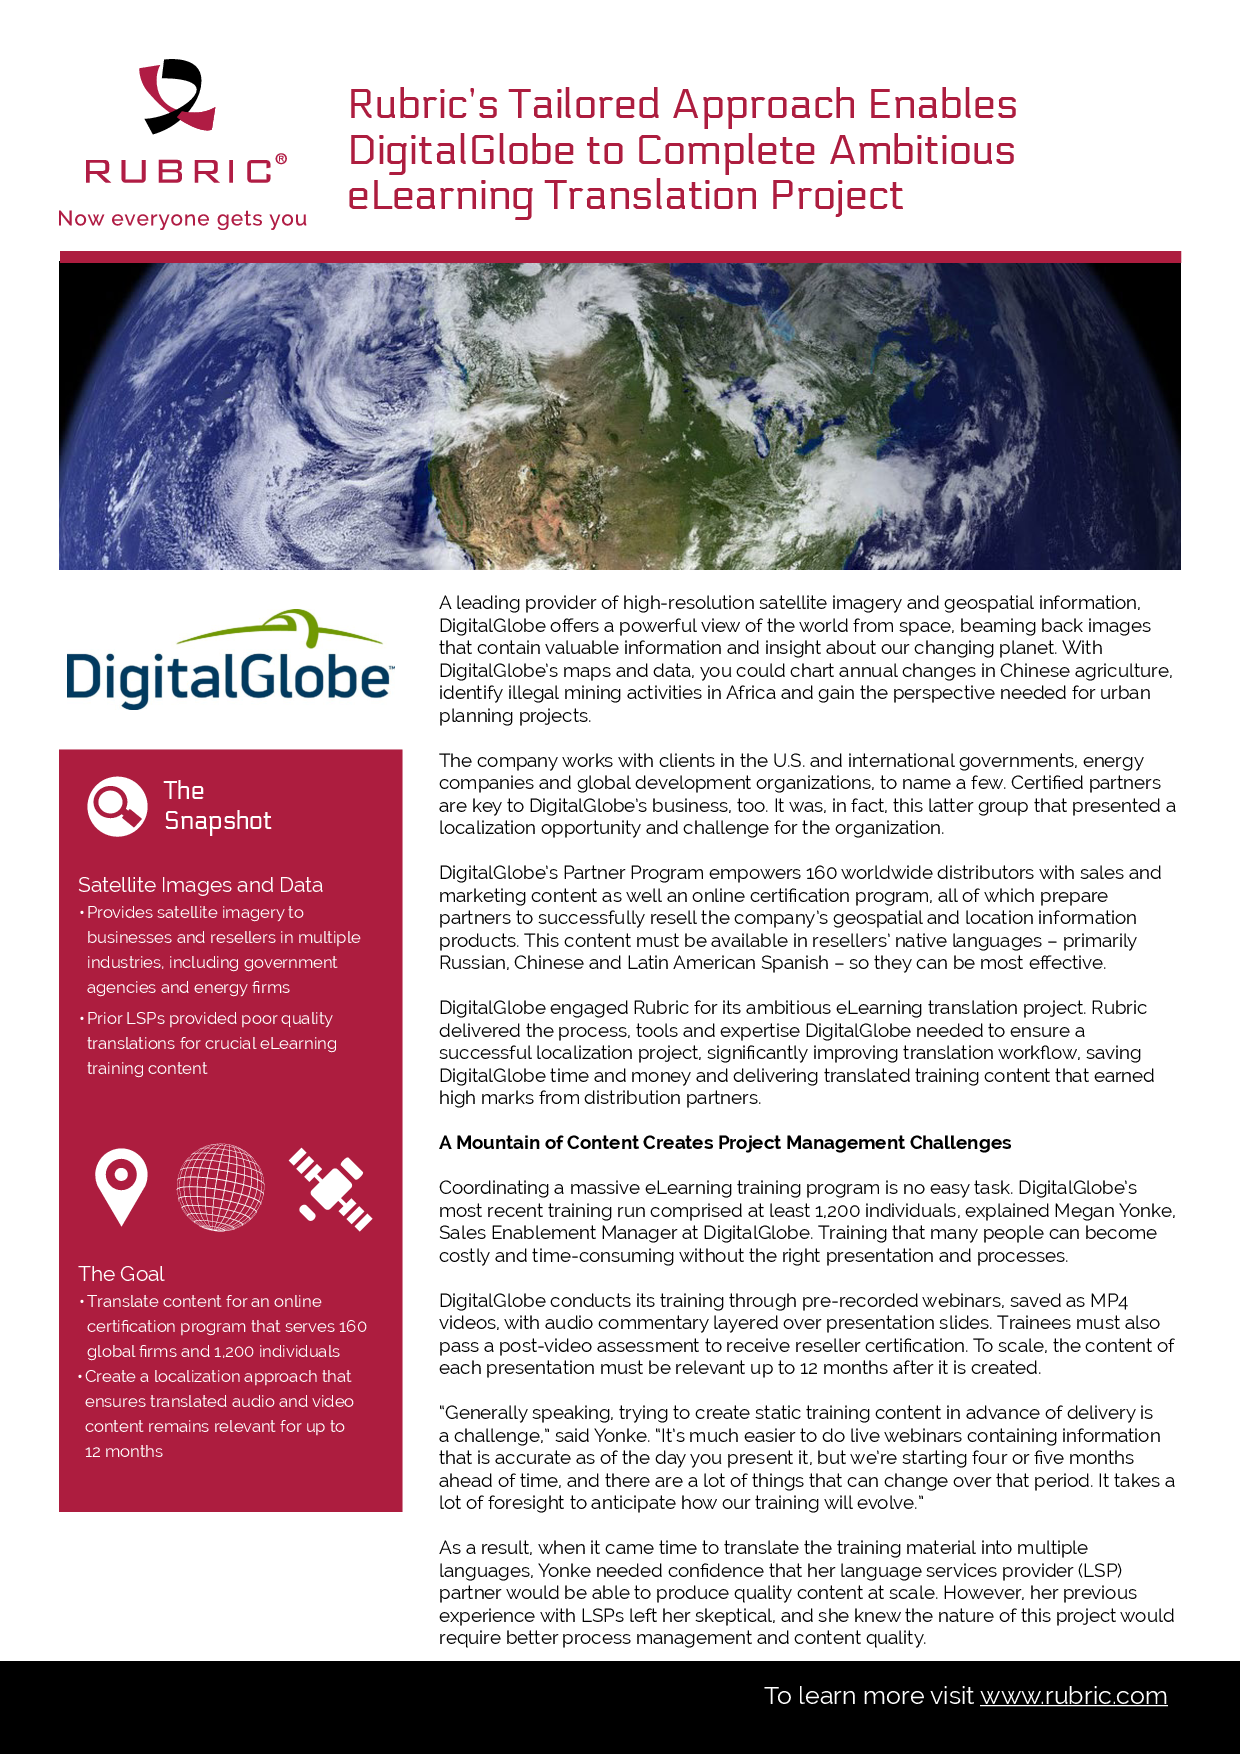 Rubrics Tailored Approach Enables Digitalglobe To Complete